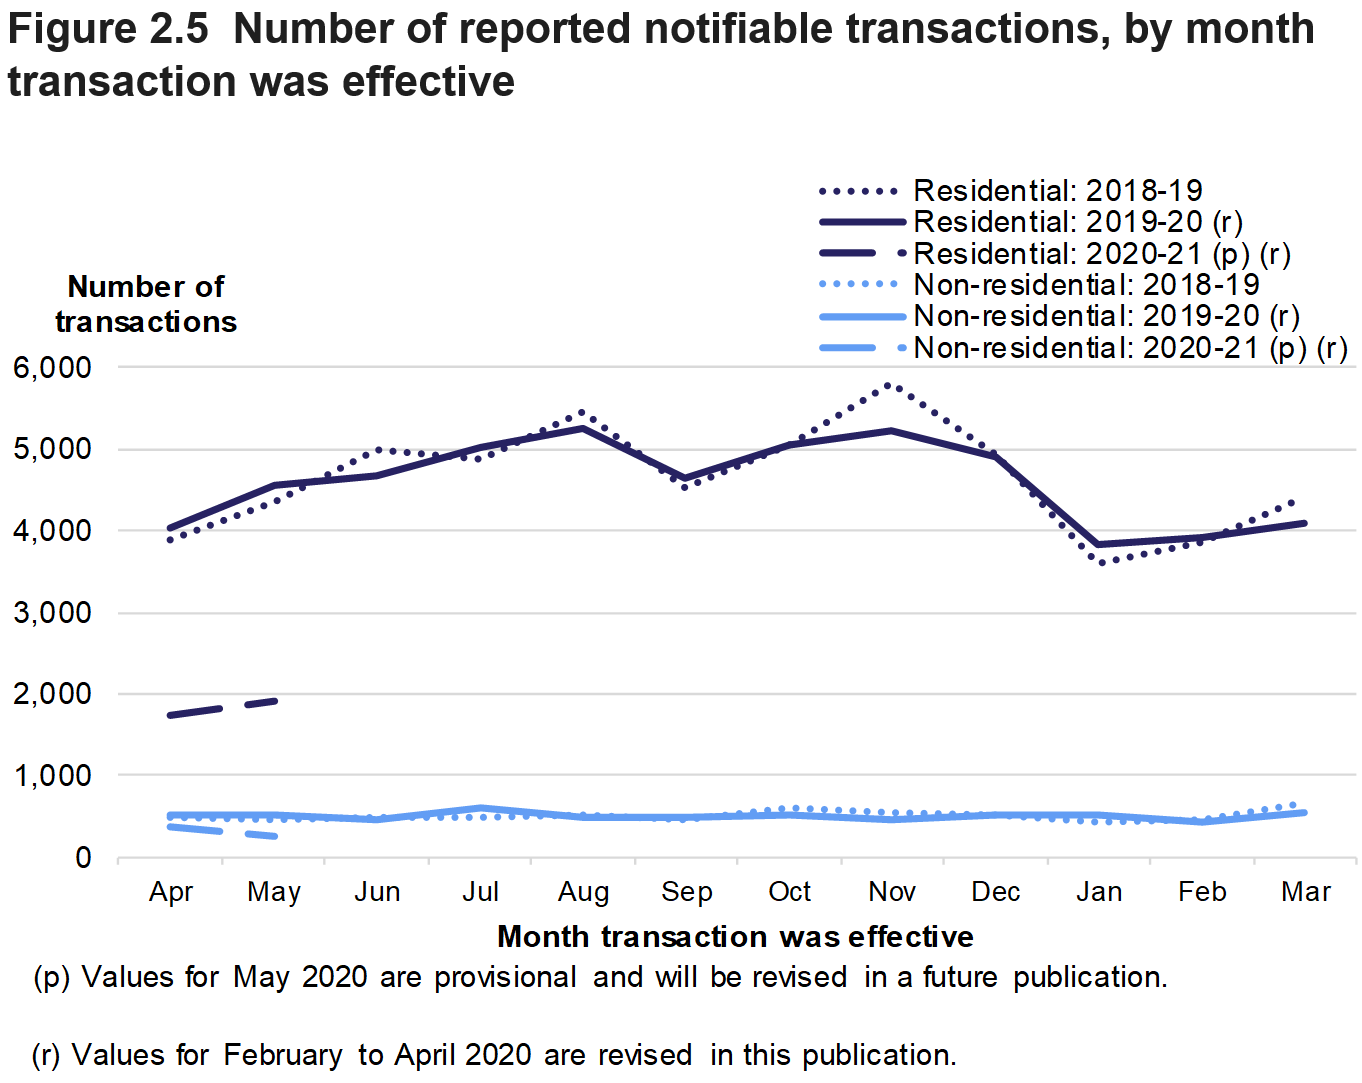 Figure 2.5 shows the monthly numbers of reported notifiable transactions from April 2018 to May 2020, for residential and non-residential transactions.